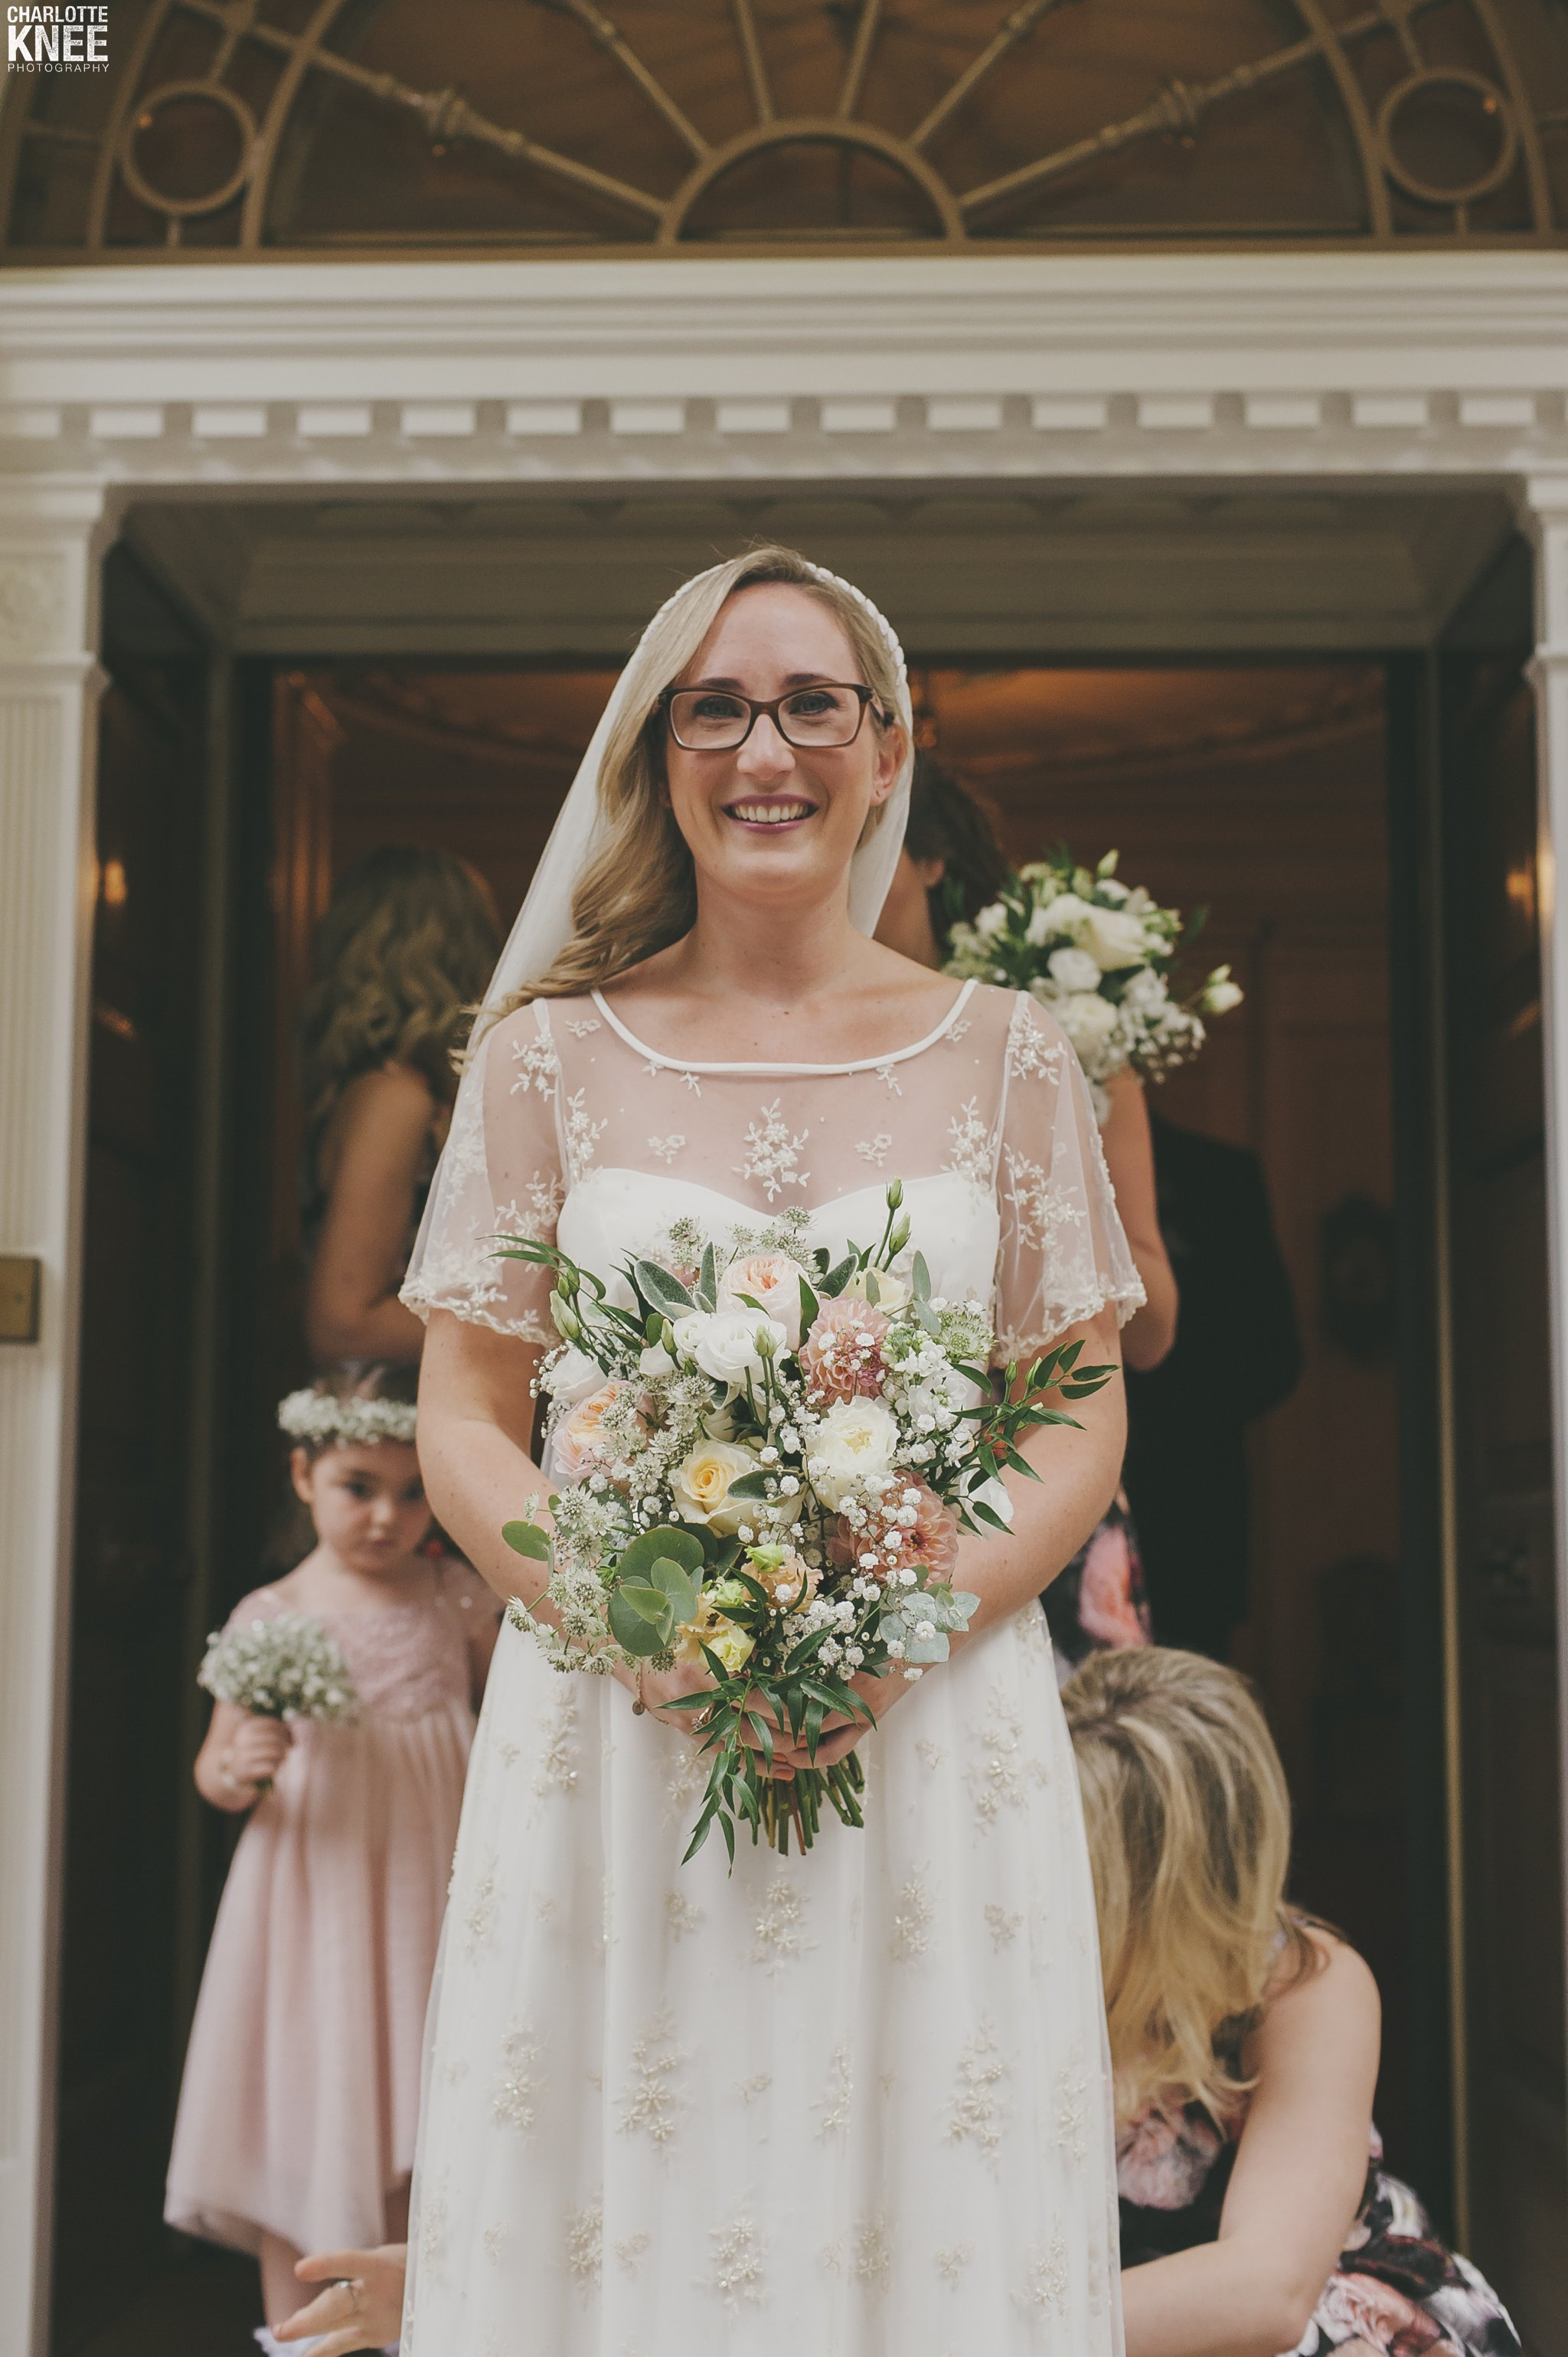 Saddlers Hall London Wedding Photography Copyright Charlotte Knee Photography_0059.jpg